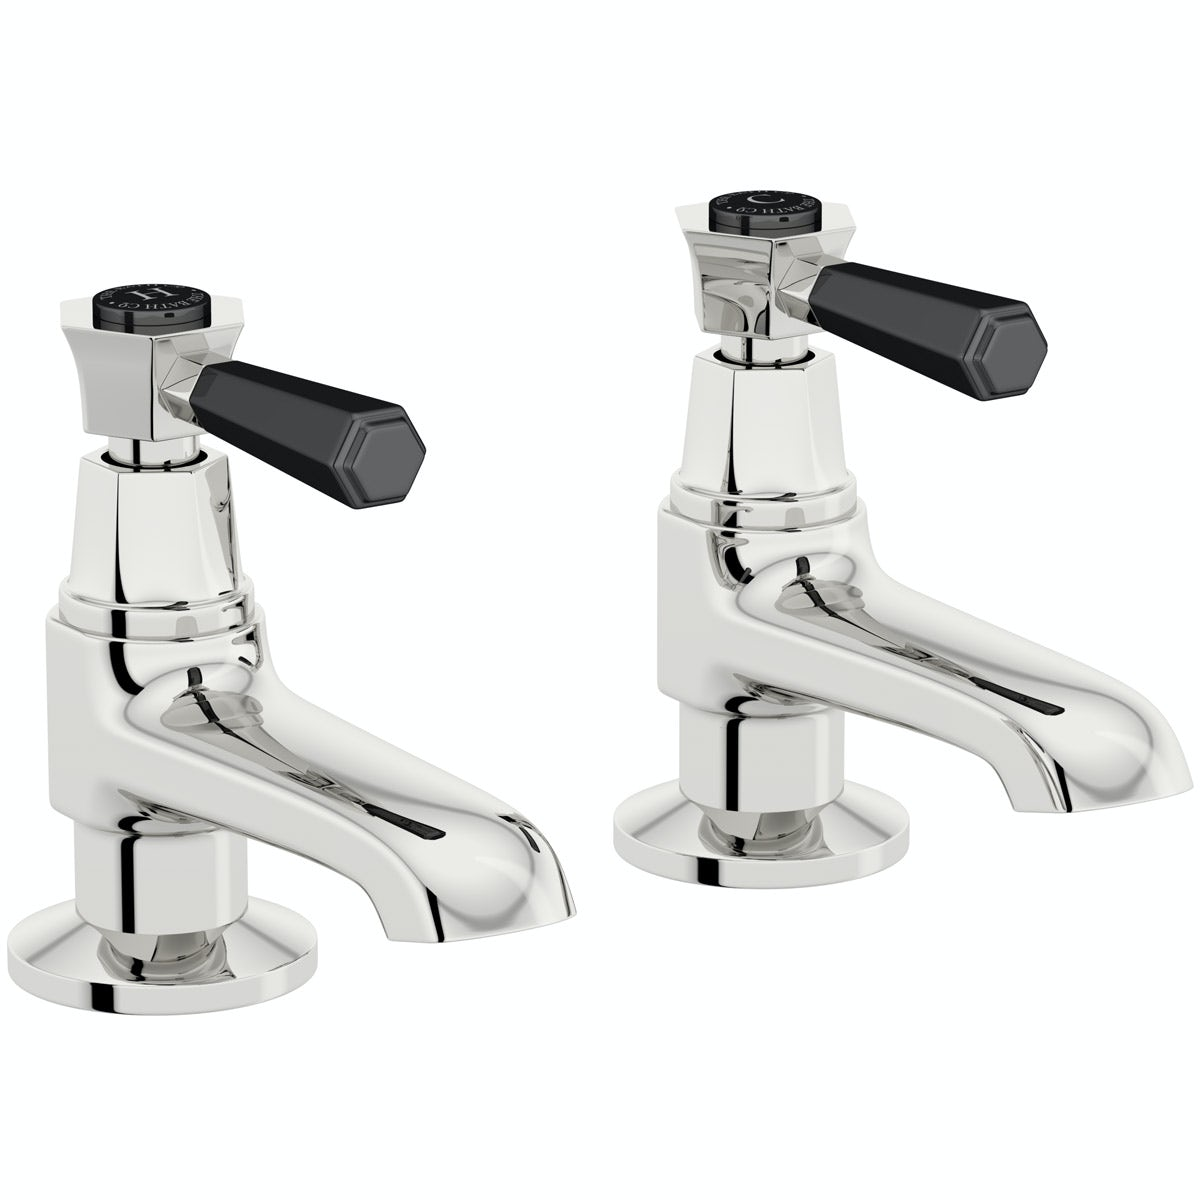 The Bath Co. Beaumont lever basin pillar taps